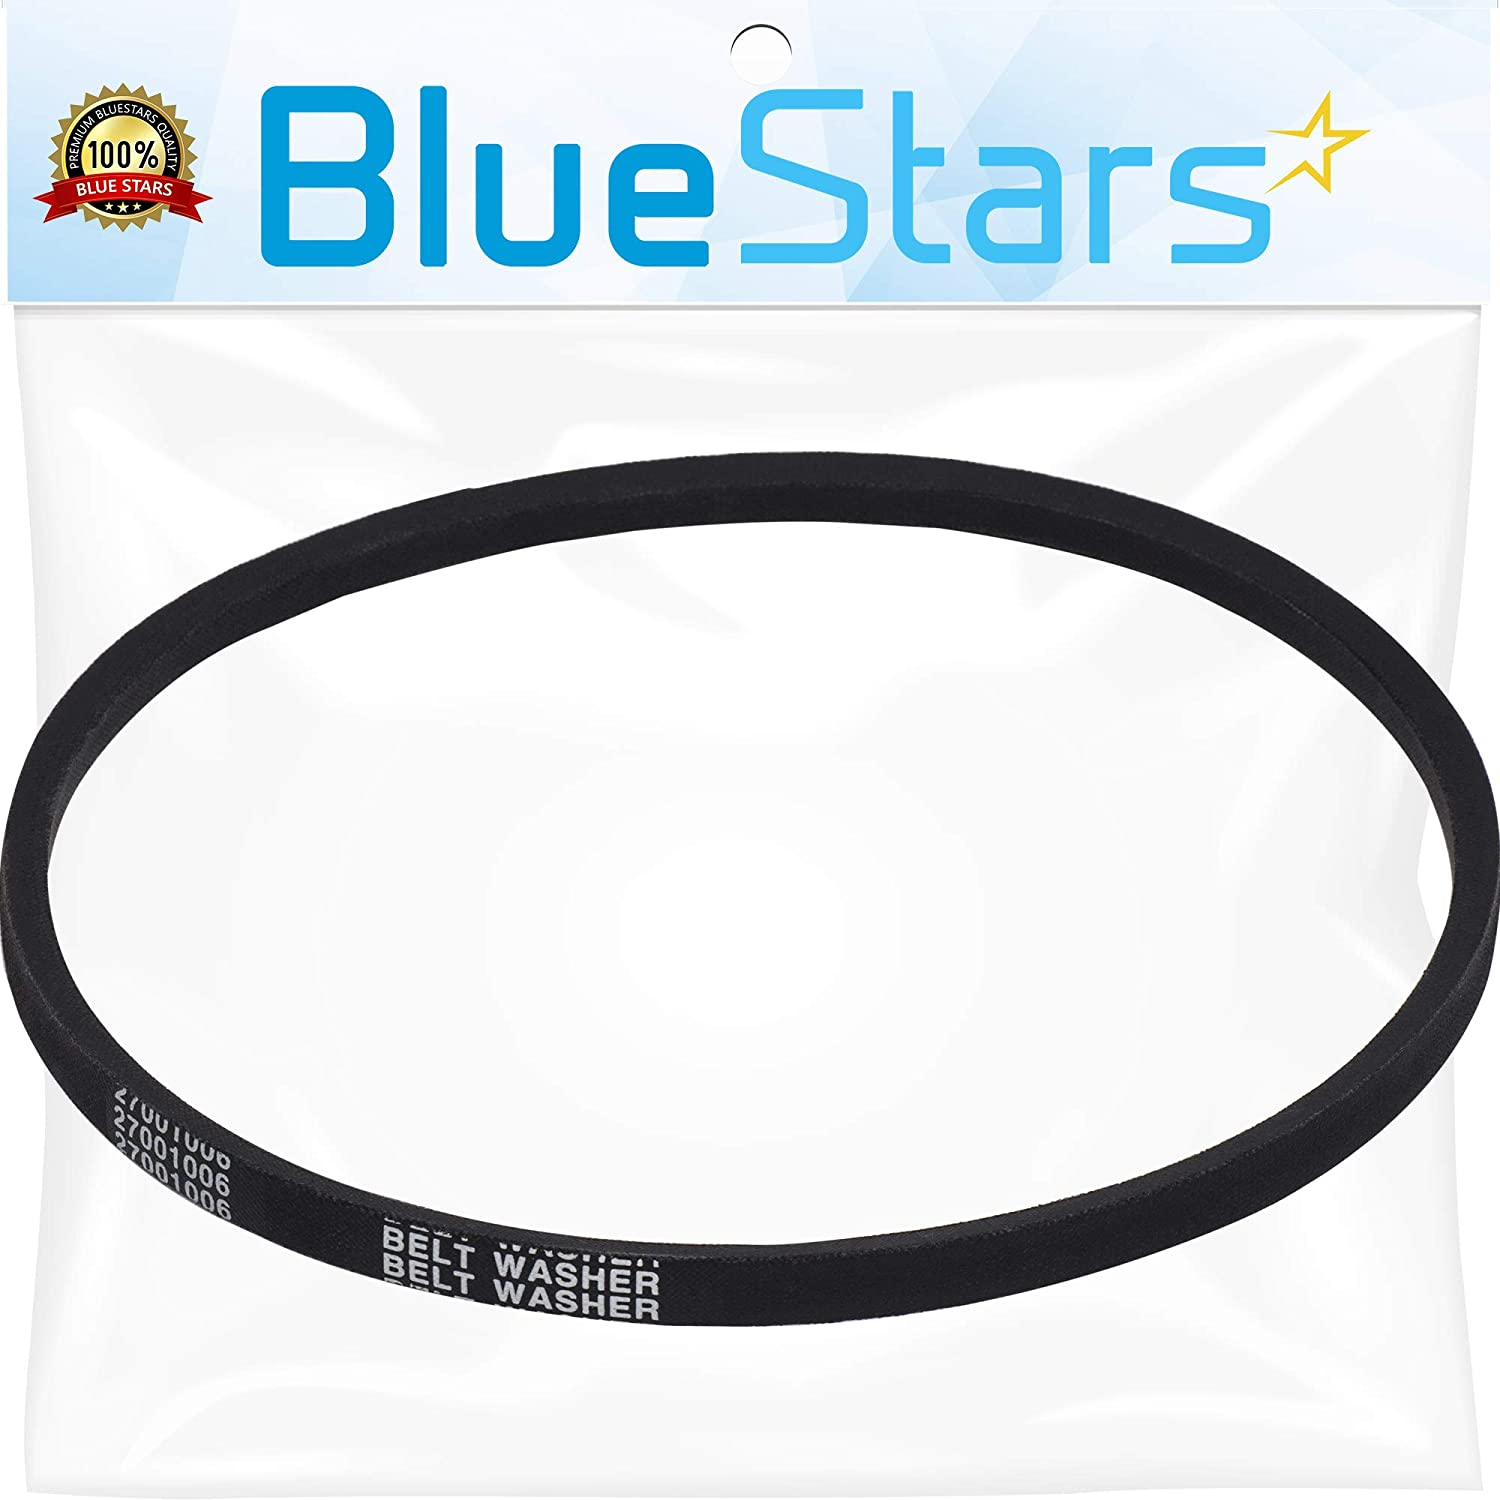 Ultra Durable 27001006 Washer Drive Belt Replacement Part by Blue Stars - Exact Fit for Whirlpool Amana Maytag Washers - Replaces 38174 WP27001006 40053606 2200063 AP6007462 PS11740577